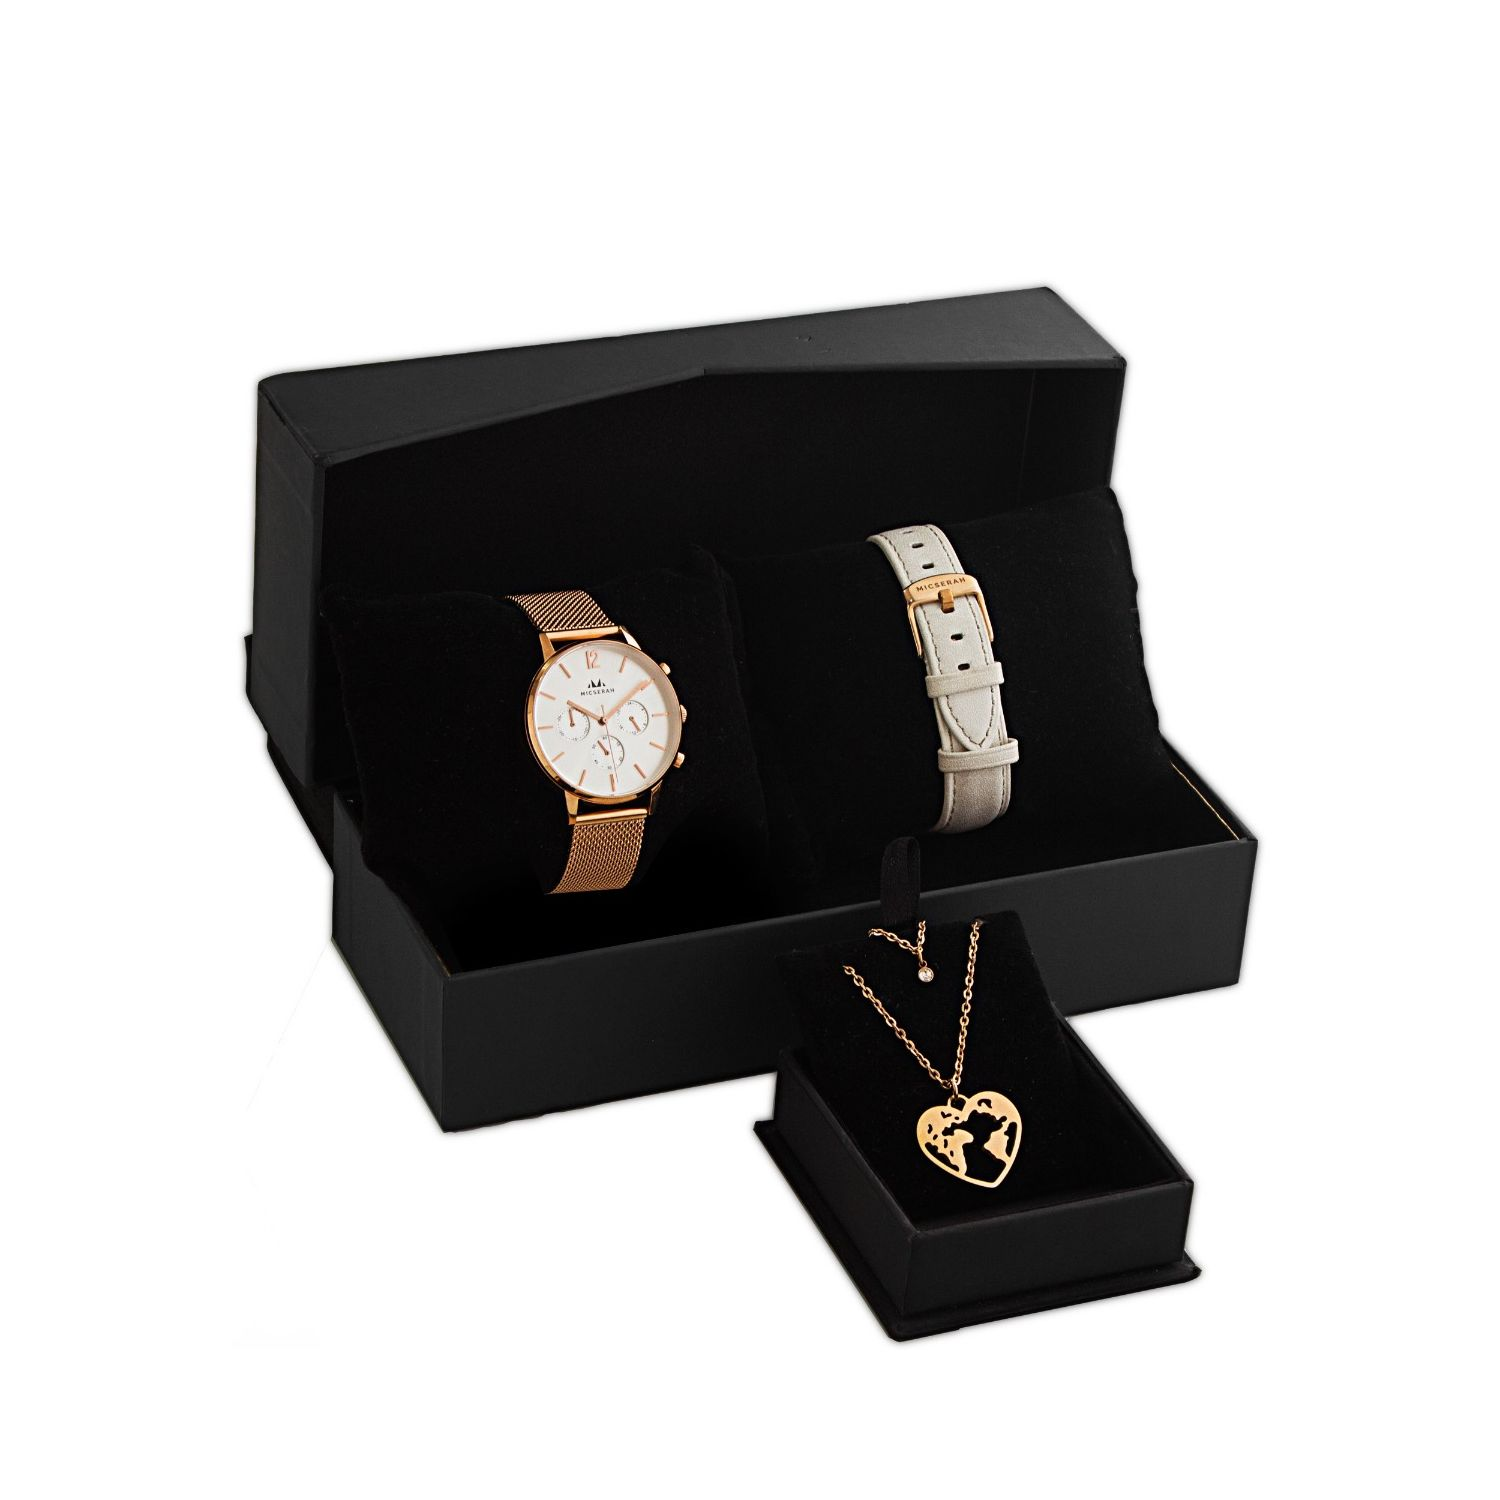 CANDRA WHITE & LOVE CHARM GIFT SET